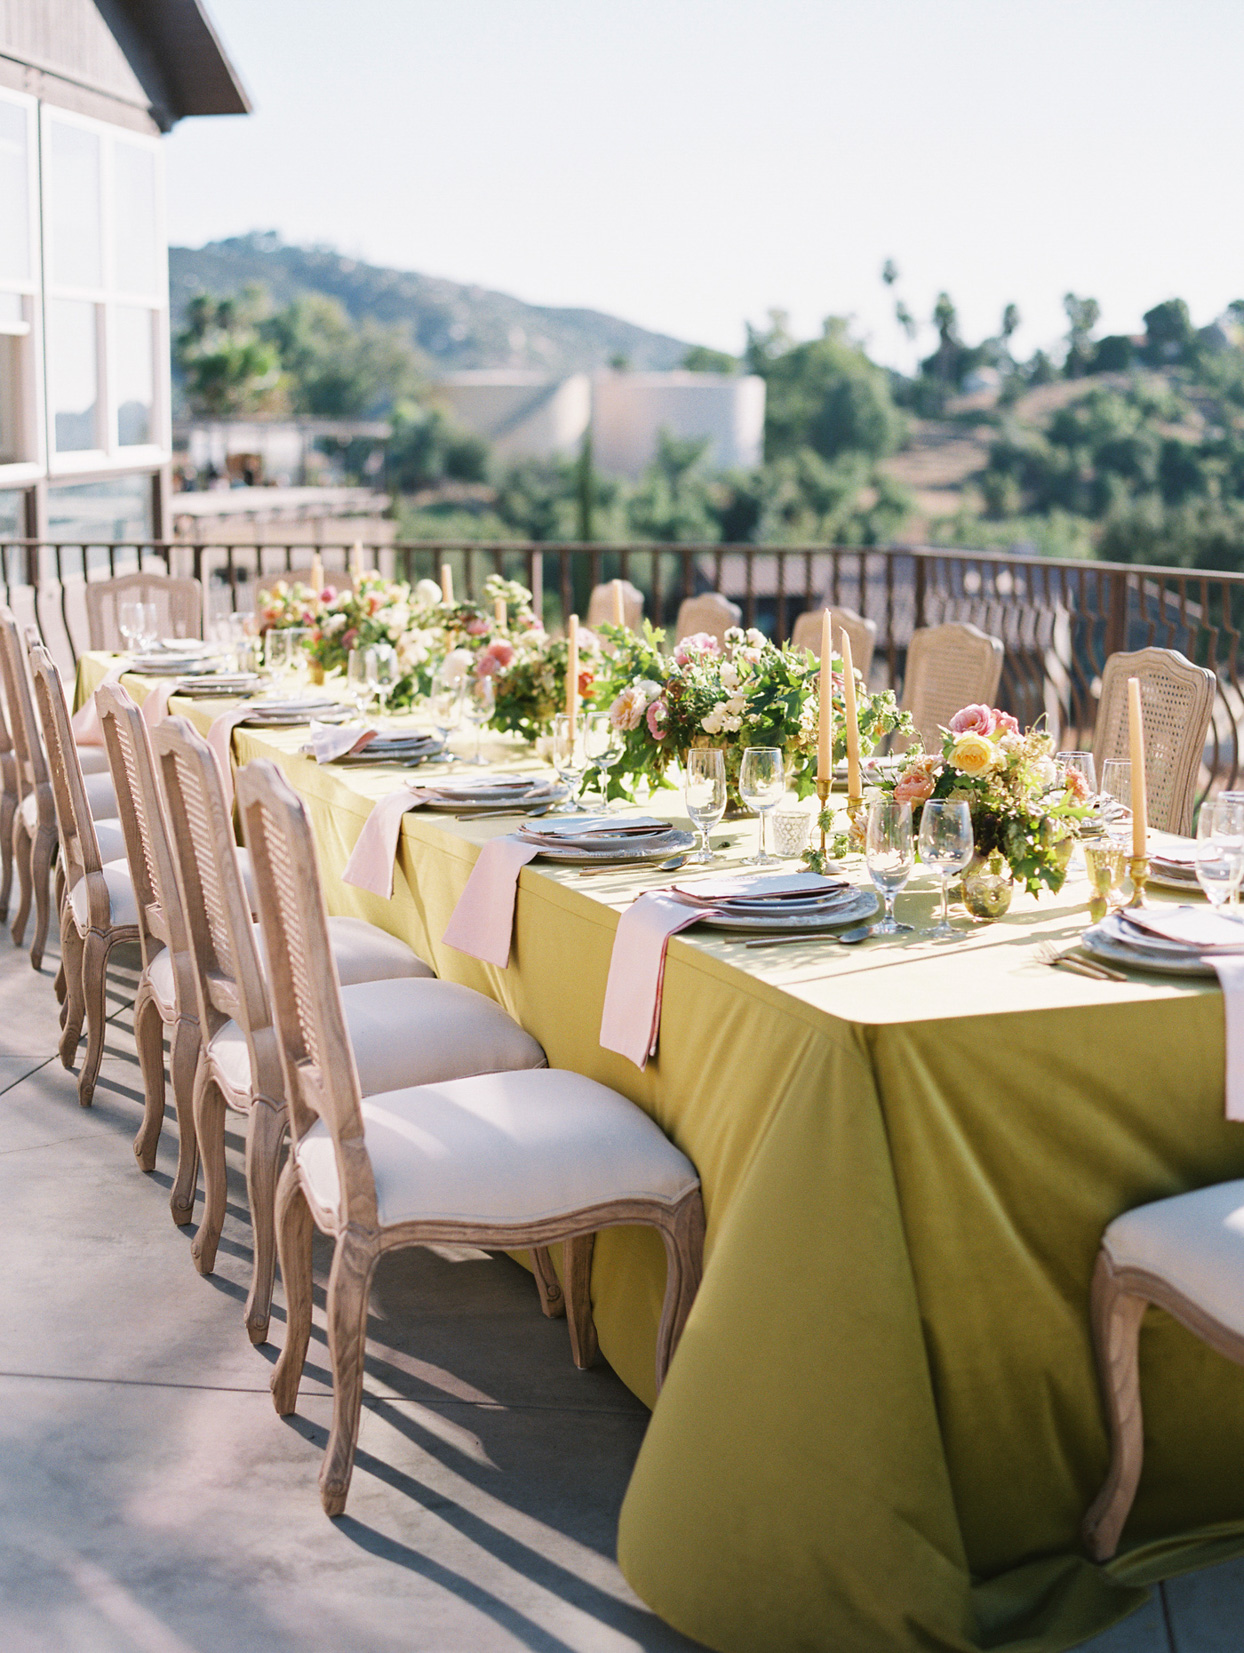 elegant wedding long table outdoors with flowers and candles